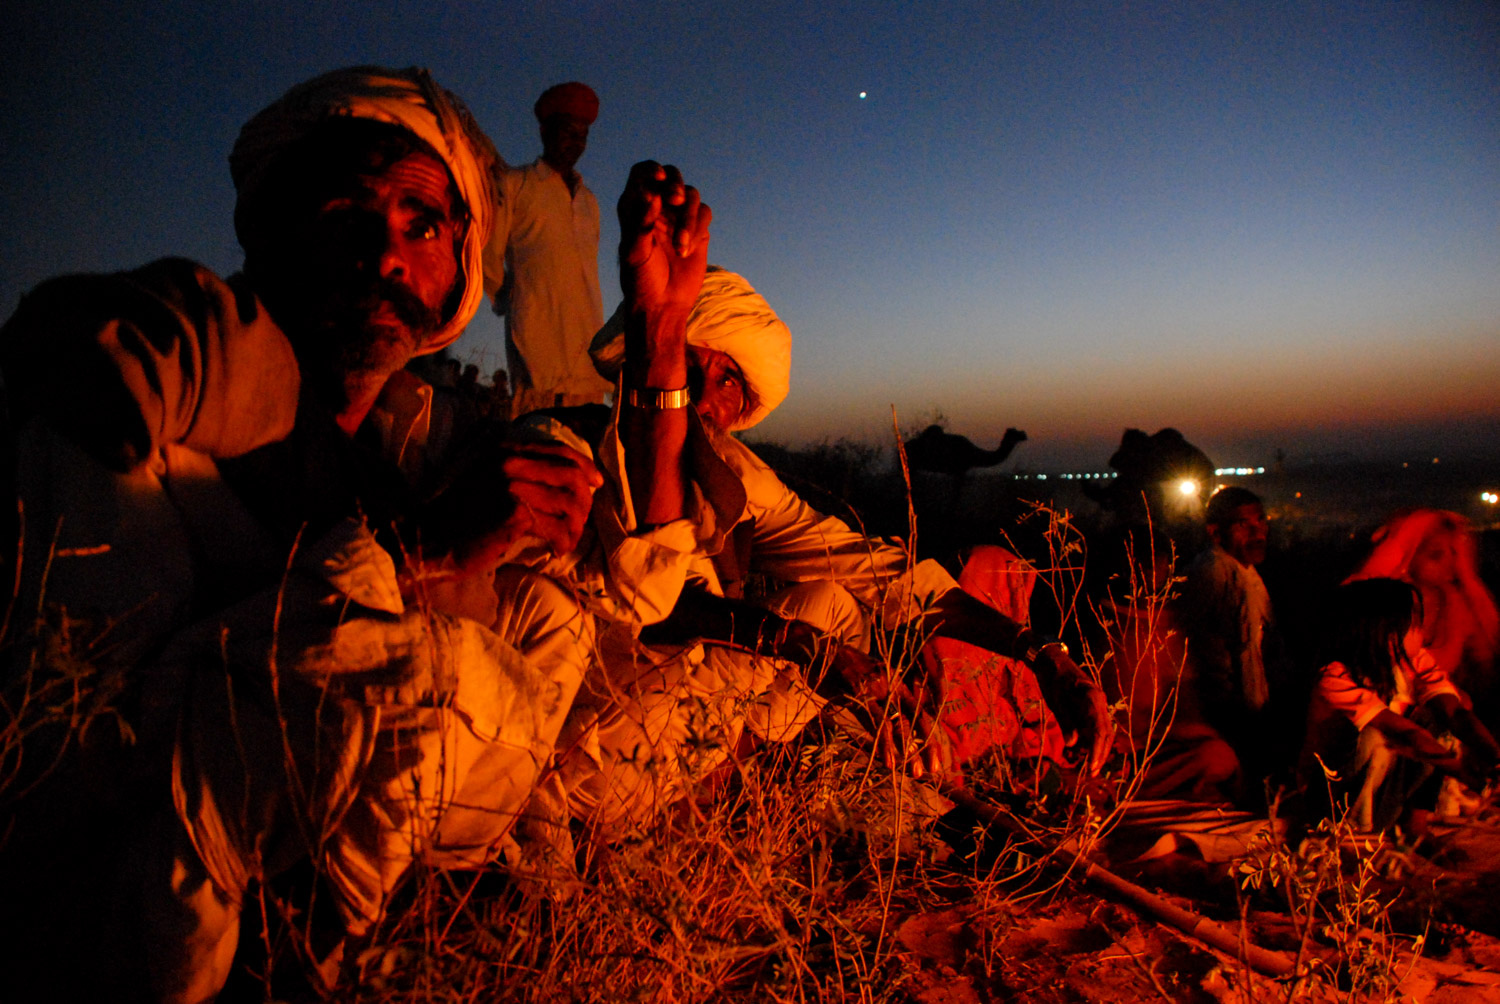 At The Pushkar Camel Fair in India, a family gathers around a campfire at dusk to stay warm and prepare a meal.